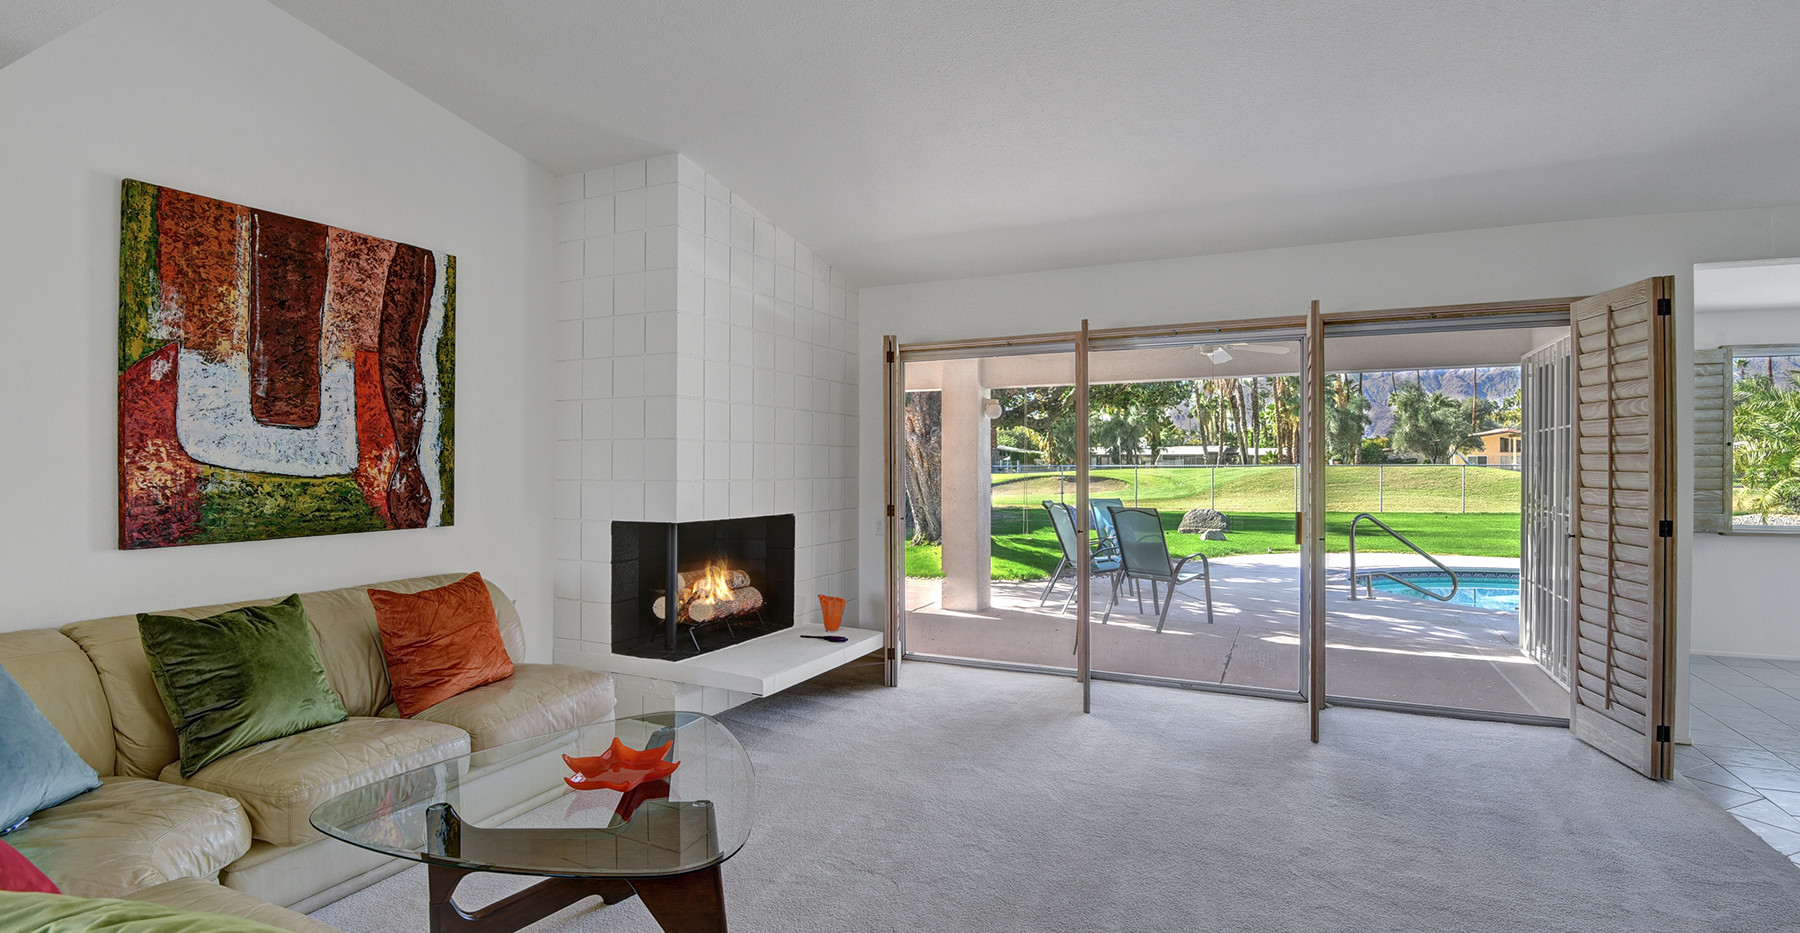 04-LIVING ROOM WITH FIREPLACE SHUTTERS O